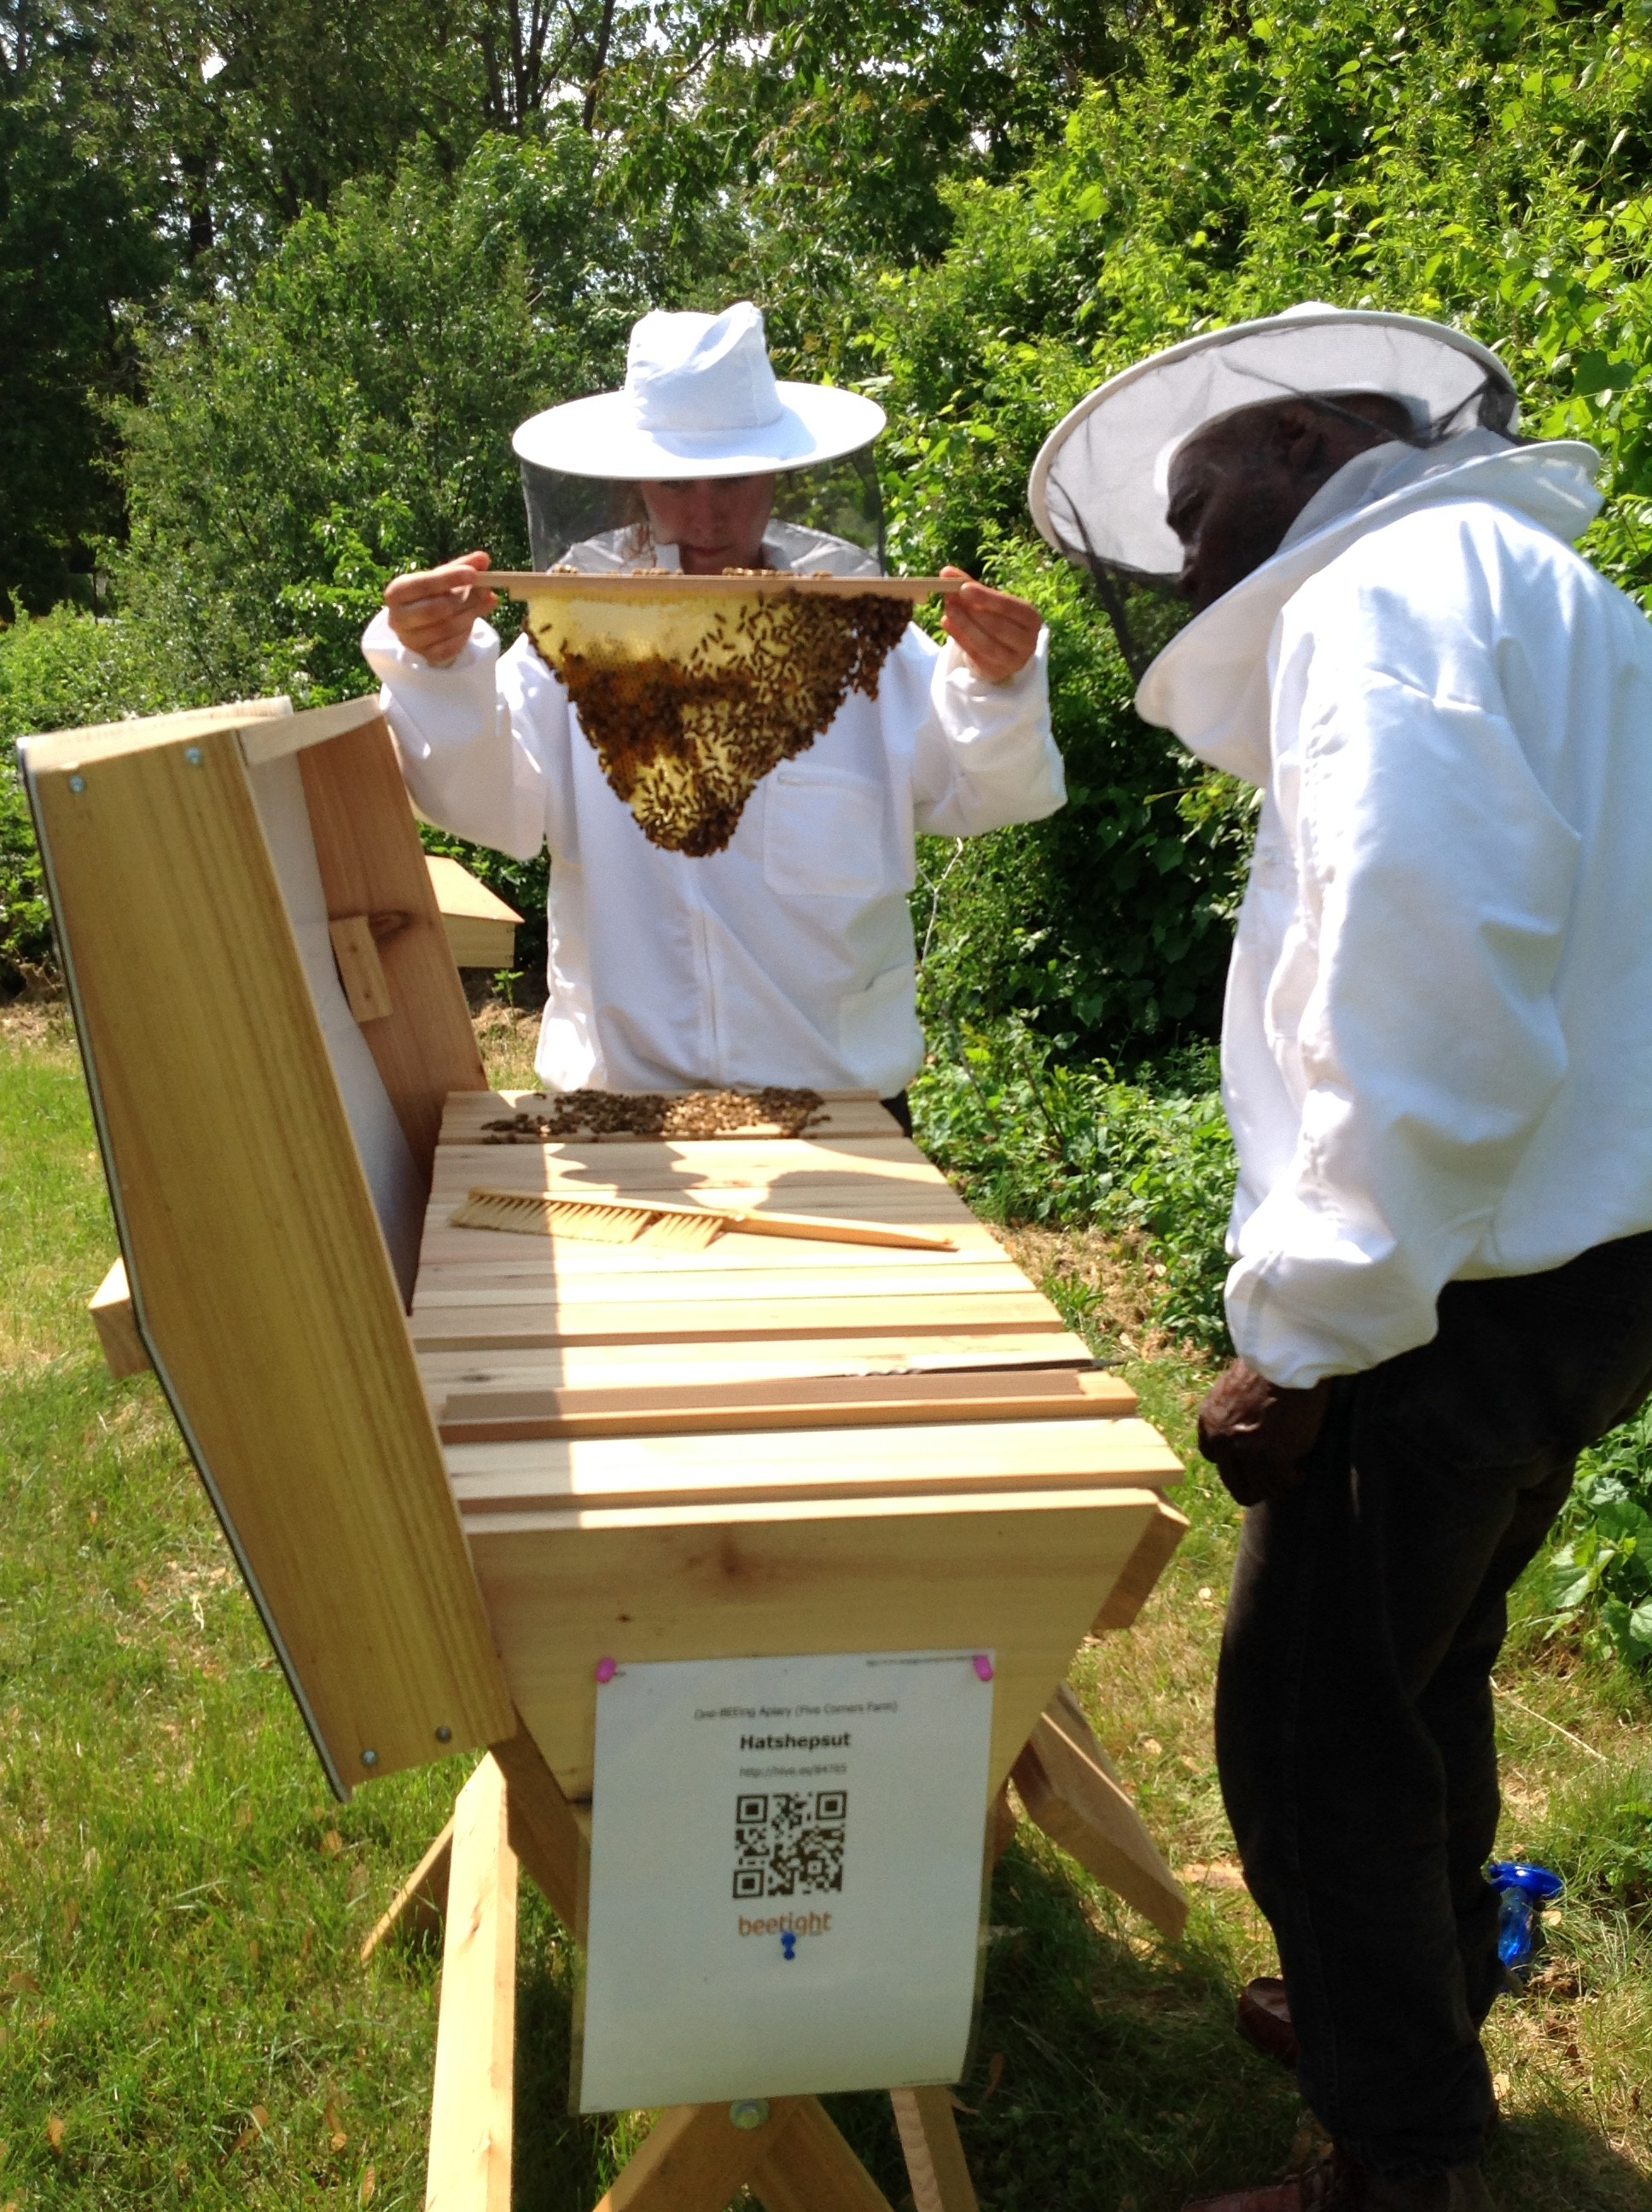 Emily and I inspecting our Hatshepsut hive, located at Hartford Food System's Five Corners farm